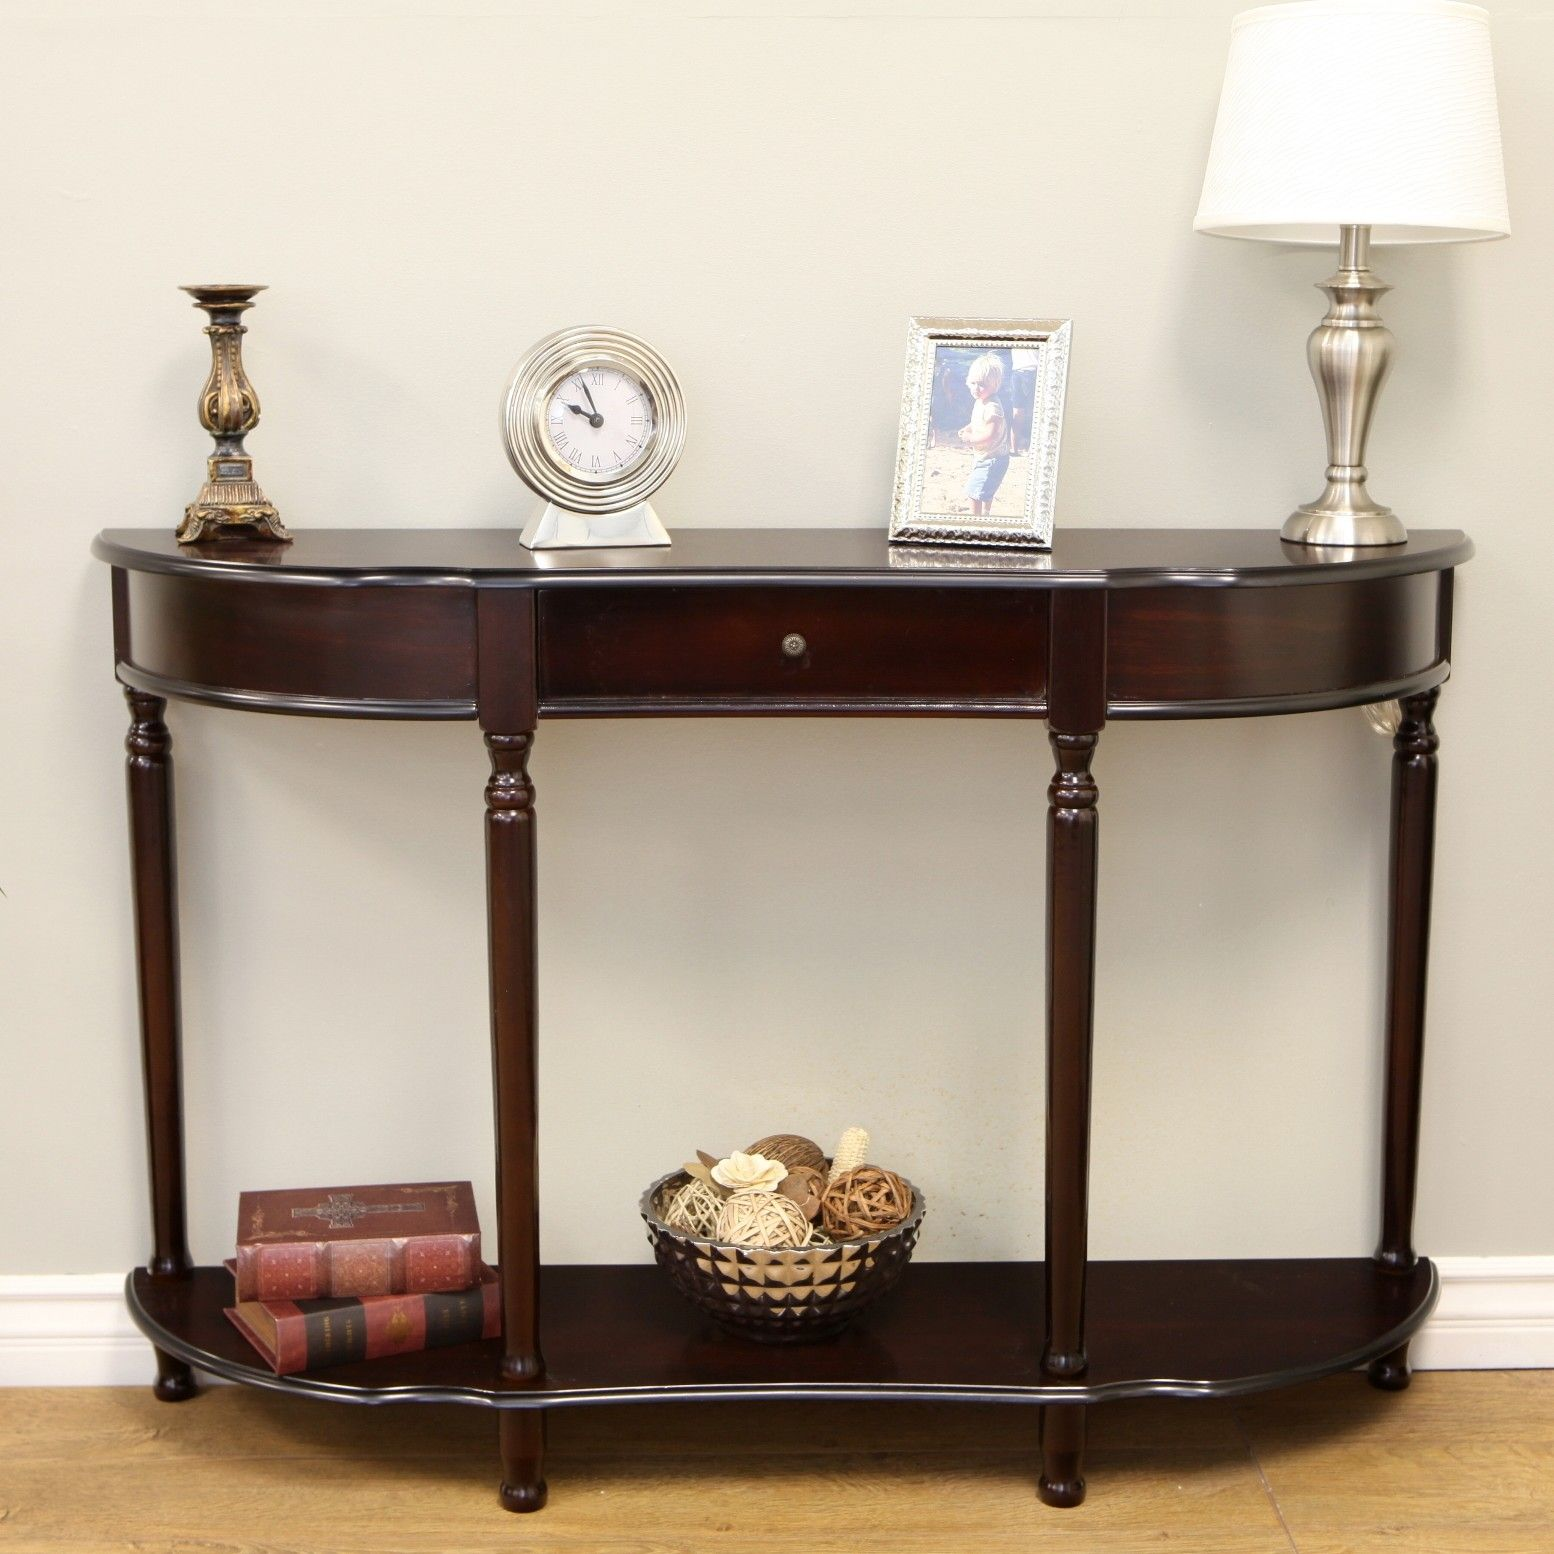 Mega Home Console Table With Turned Legs Reviews Wayfair 31 47 W 12 D